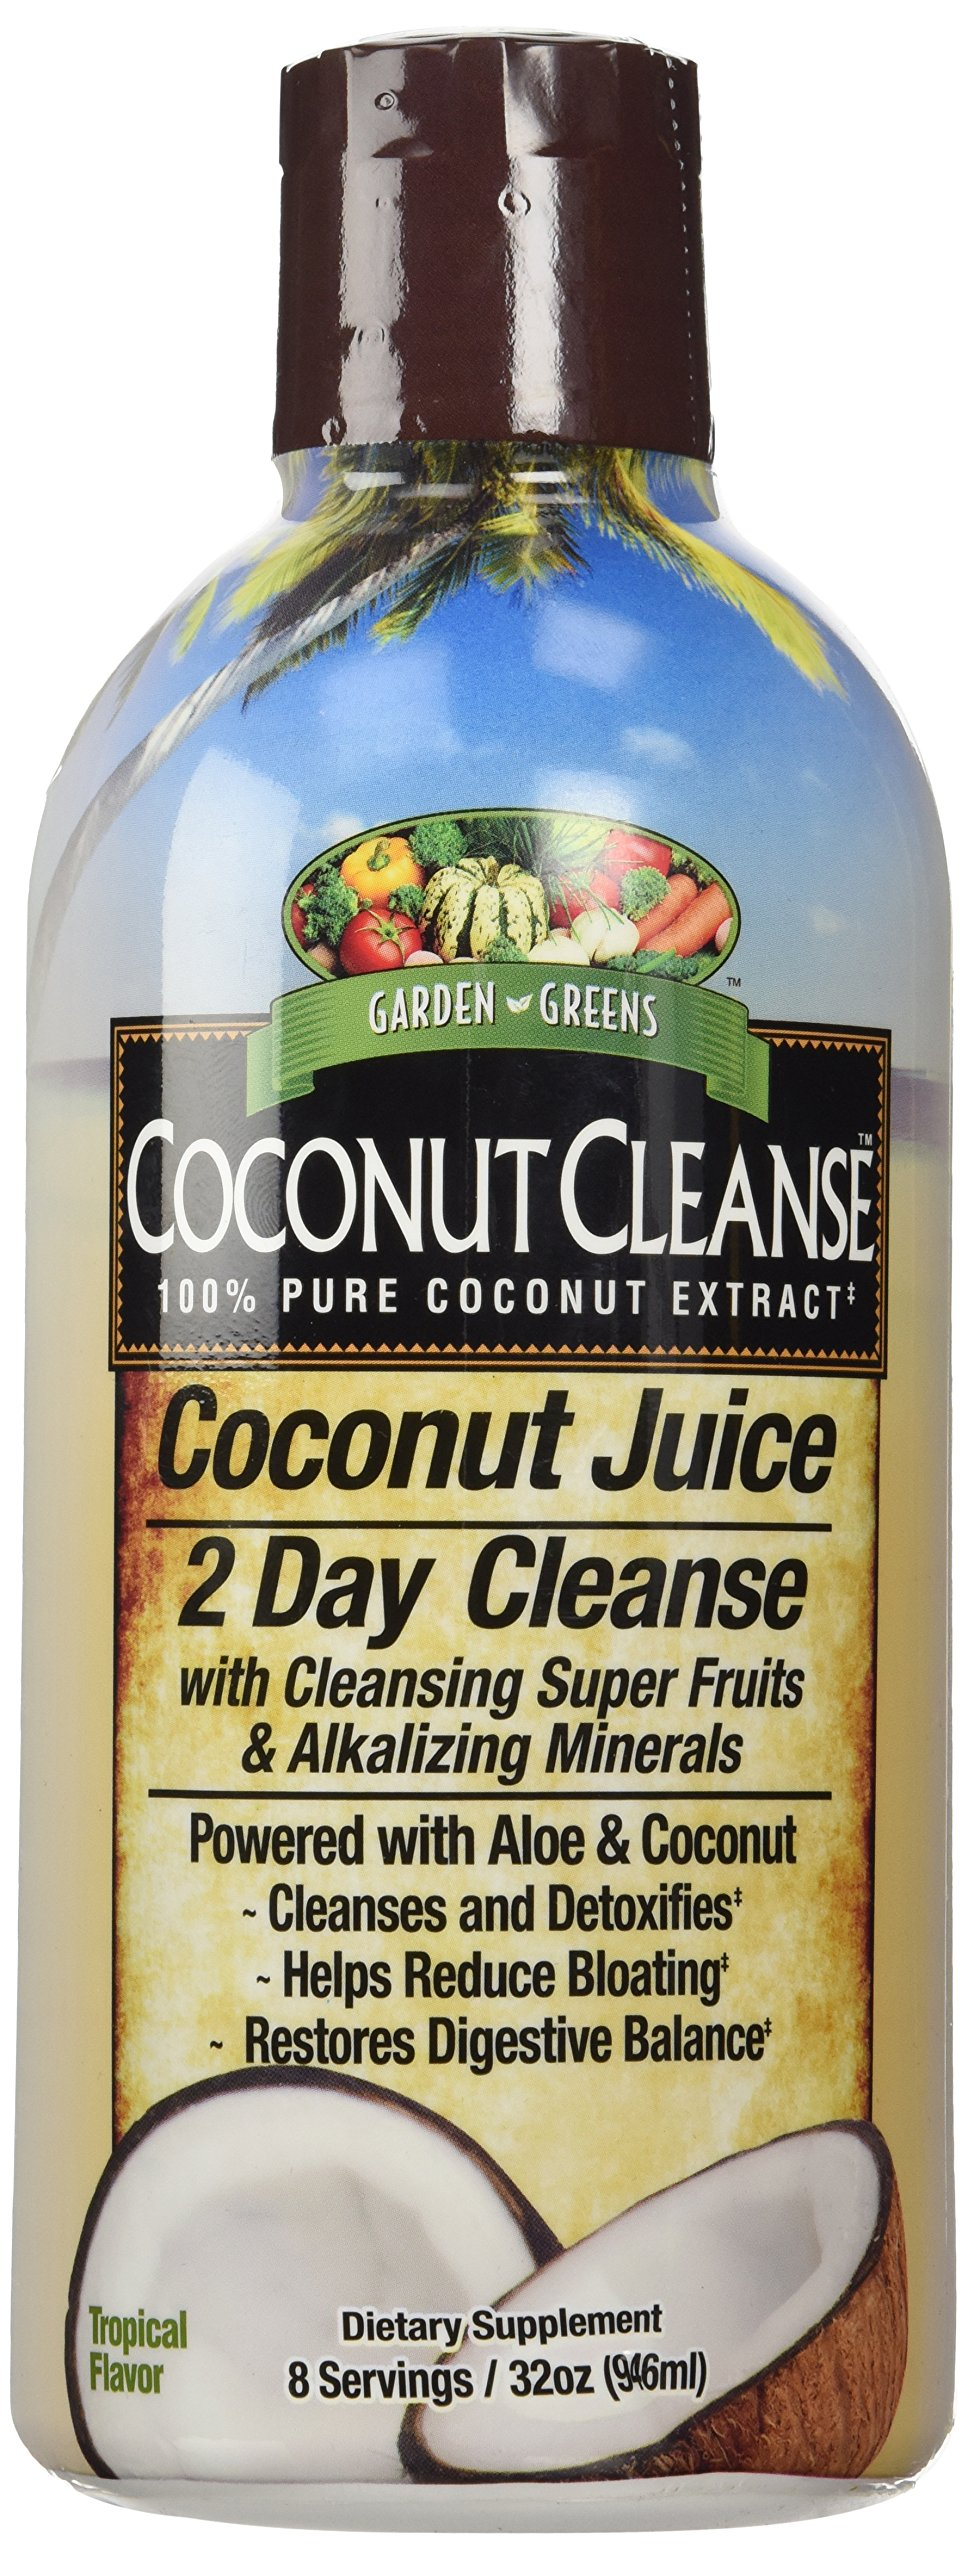 Amazon.com: Garden Greens, Acai-cleanse, 947 ml: Health & Personal Care